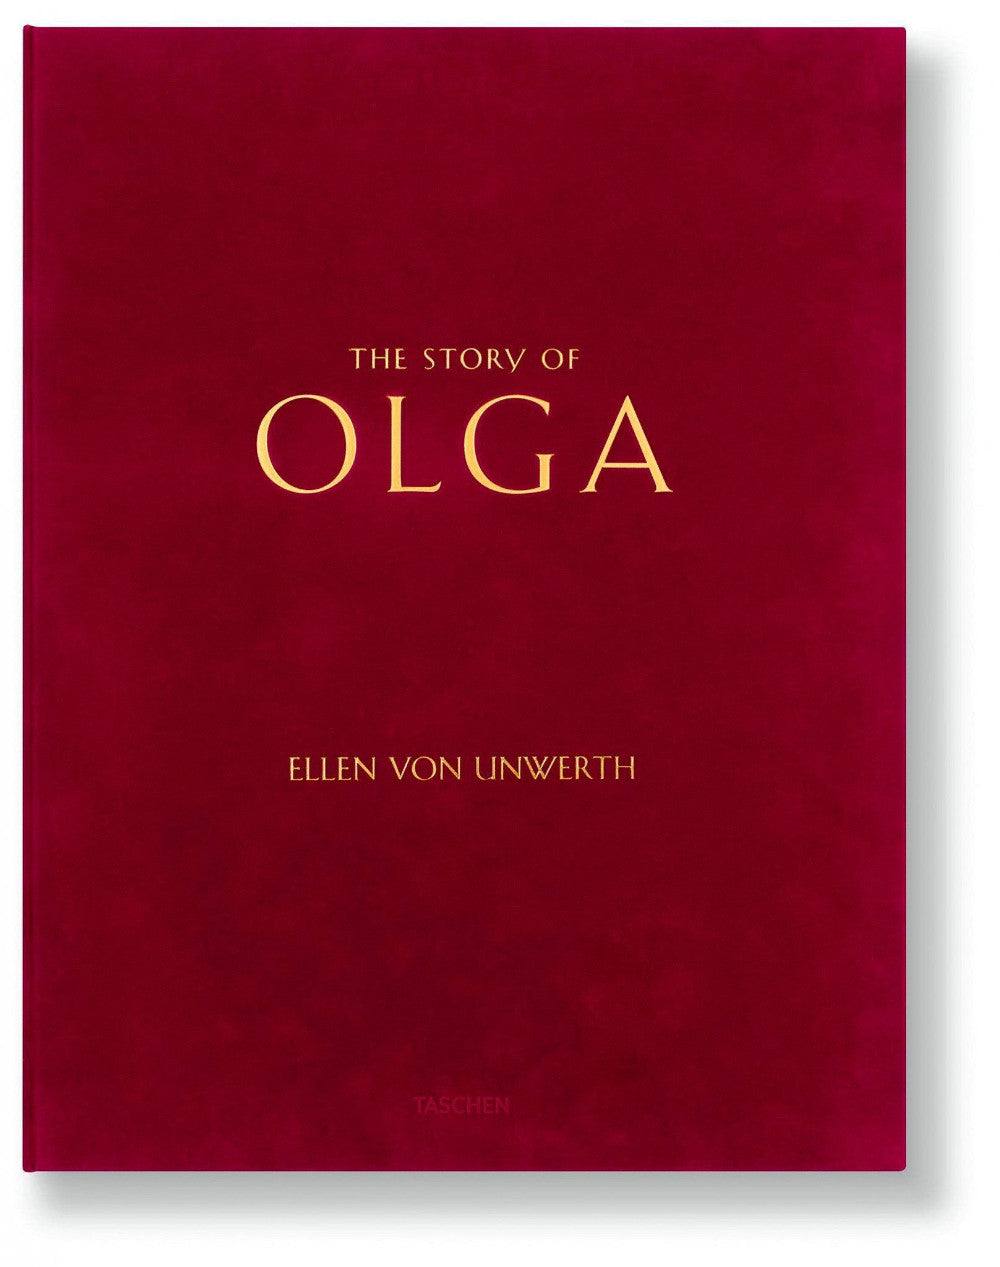 Olga, The Story Of Olga, Ellen von Unwerth, photography, Taschen, pinup, pinup girl, book, gift shop, gifts, fashion, art, gallery, La Maison Rebelle, Los Angeles, limited edition, signed, numbered